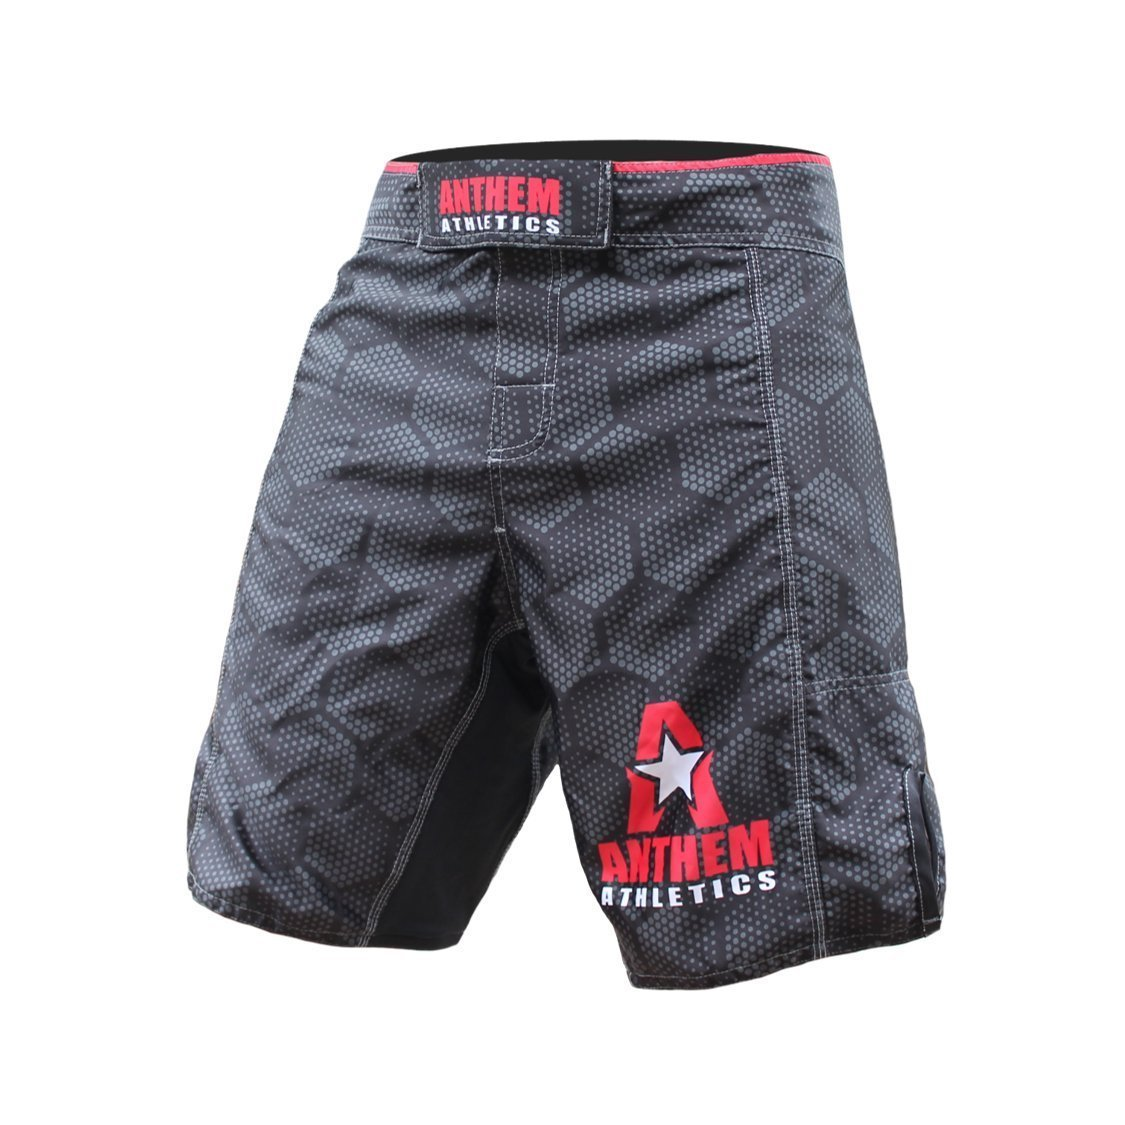 Anthem Athletics RESILIENCE Fight Shorts - Black Hex With Red - 38''